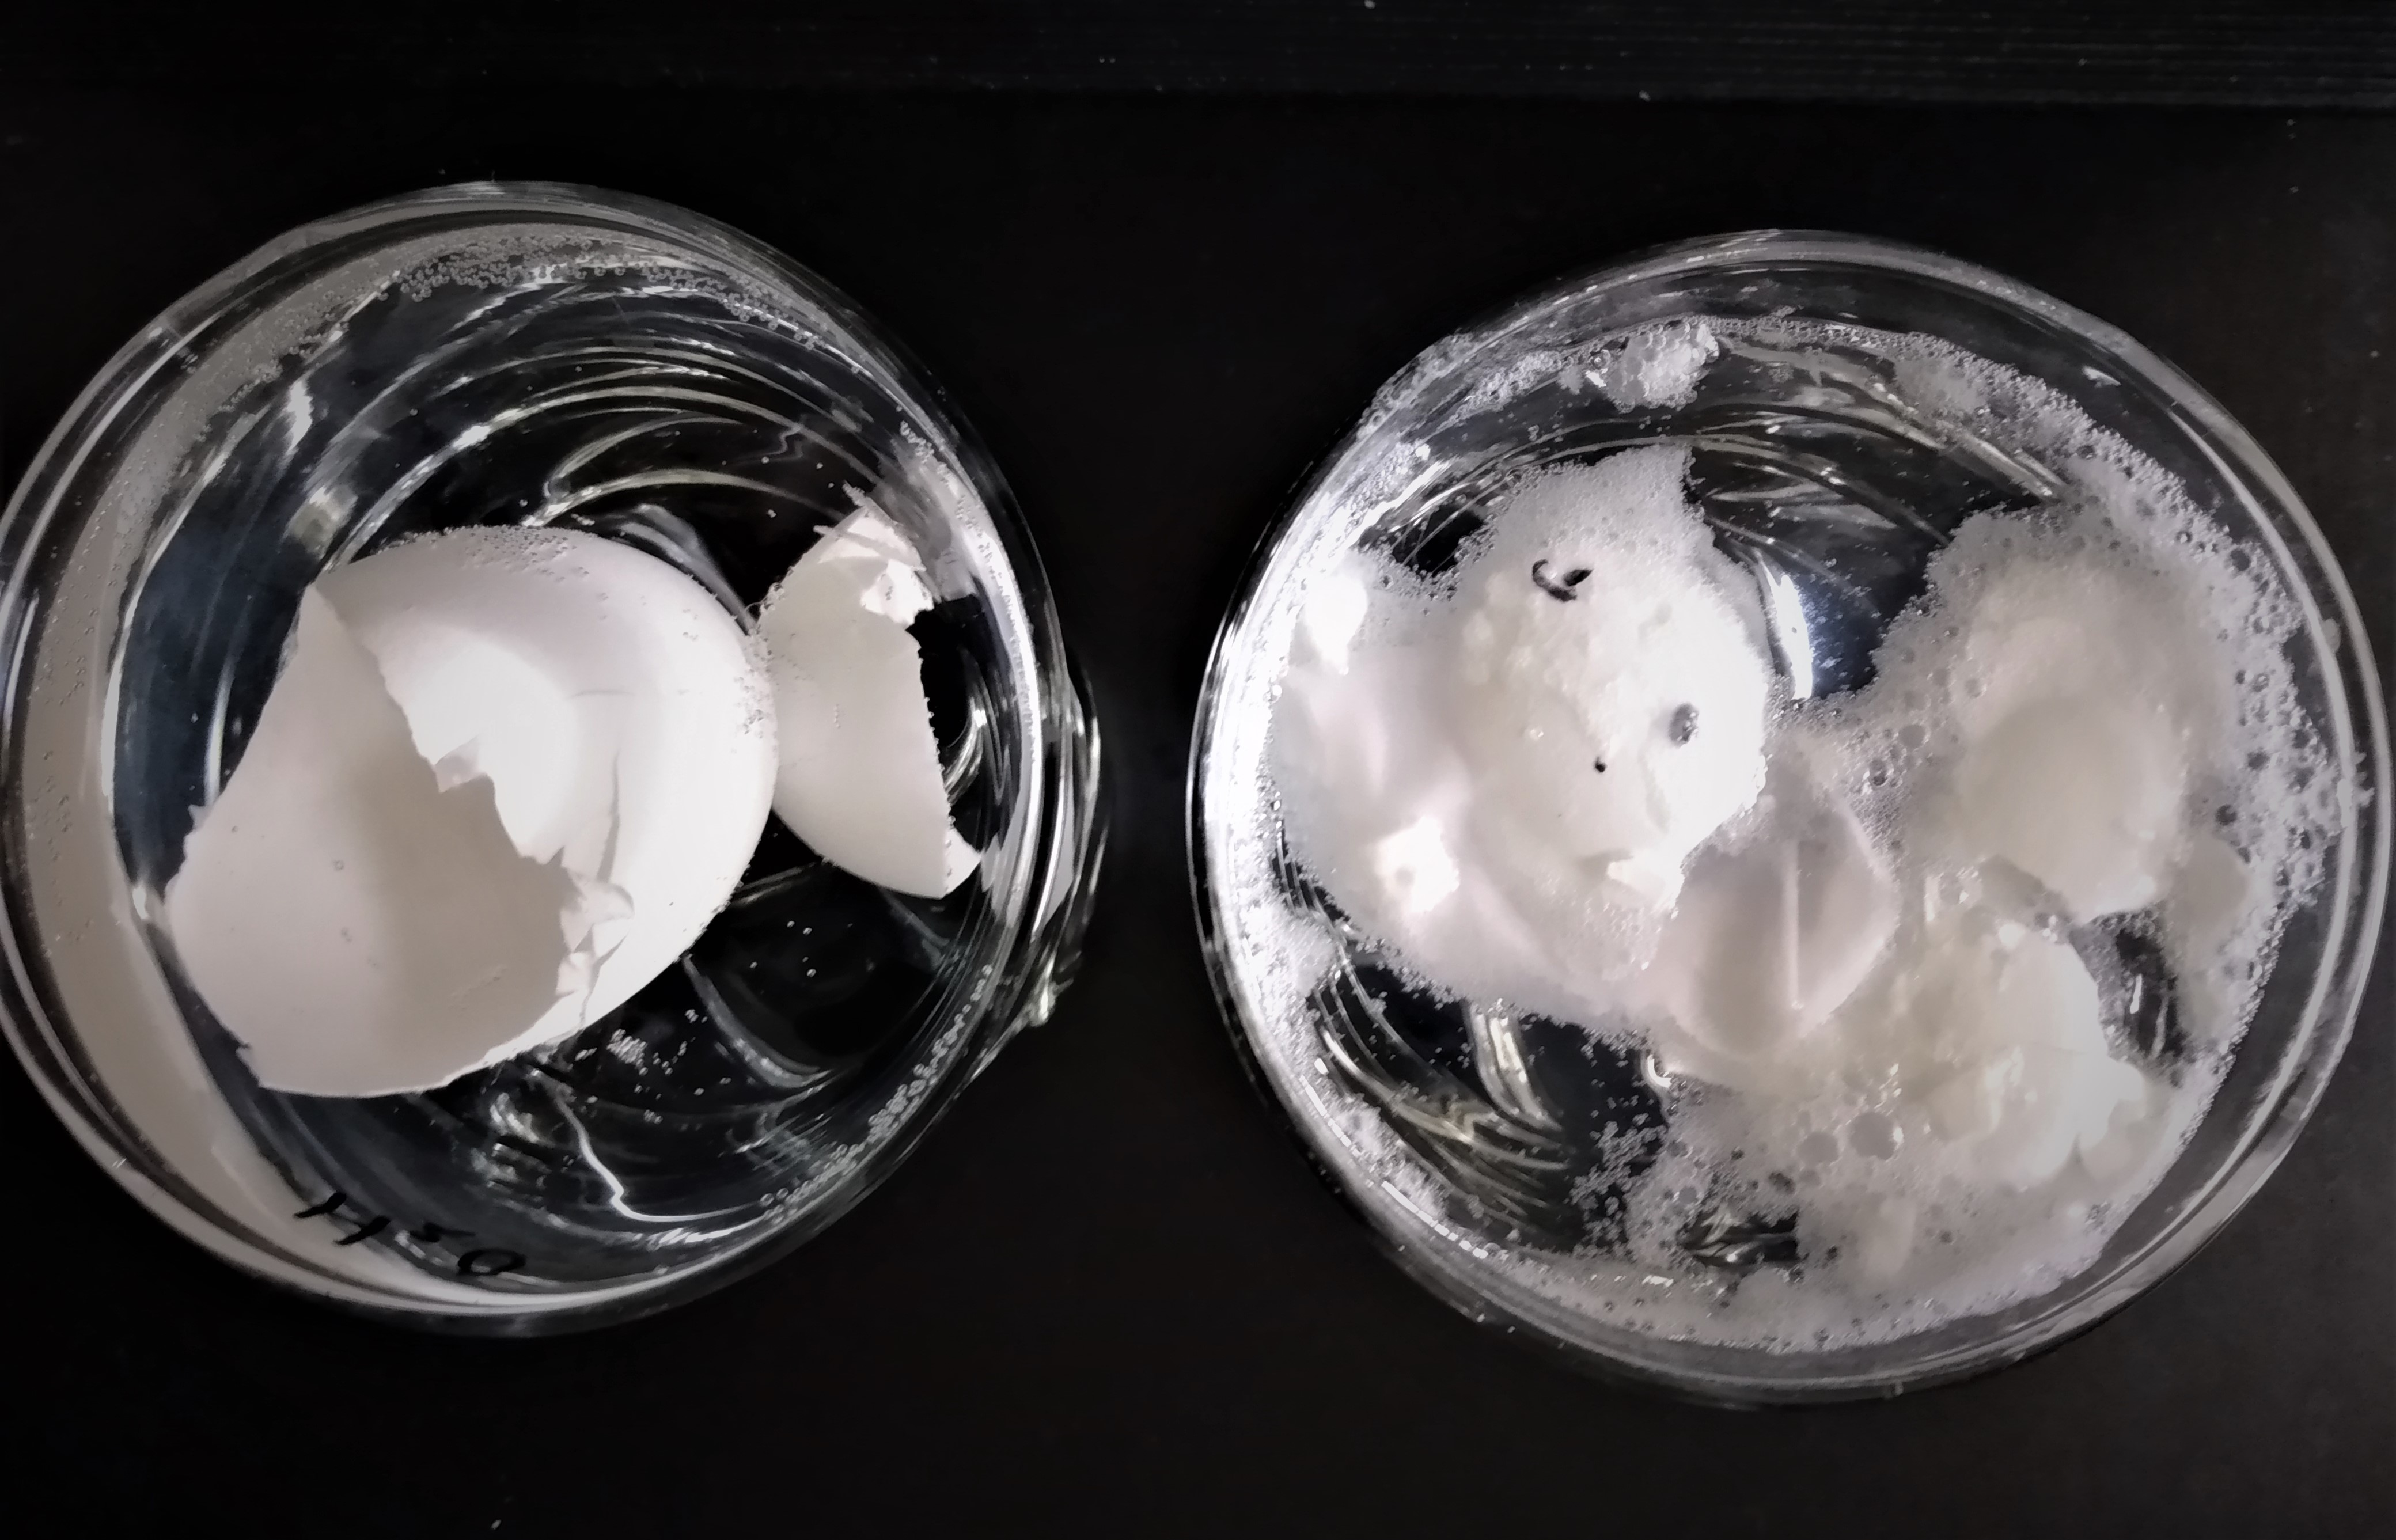 Egg shells in water on the left and in vinegar on the right after 24 hours